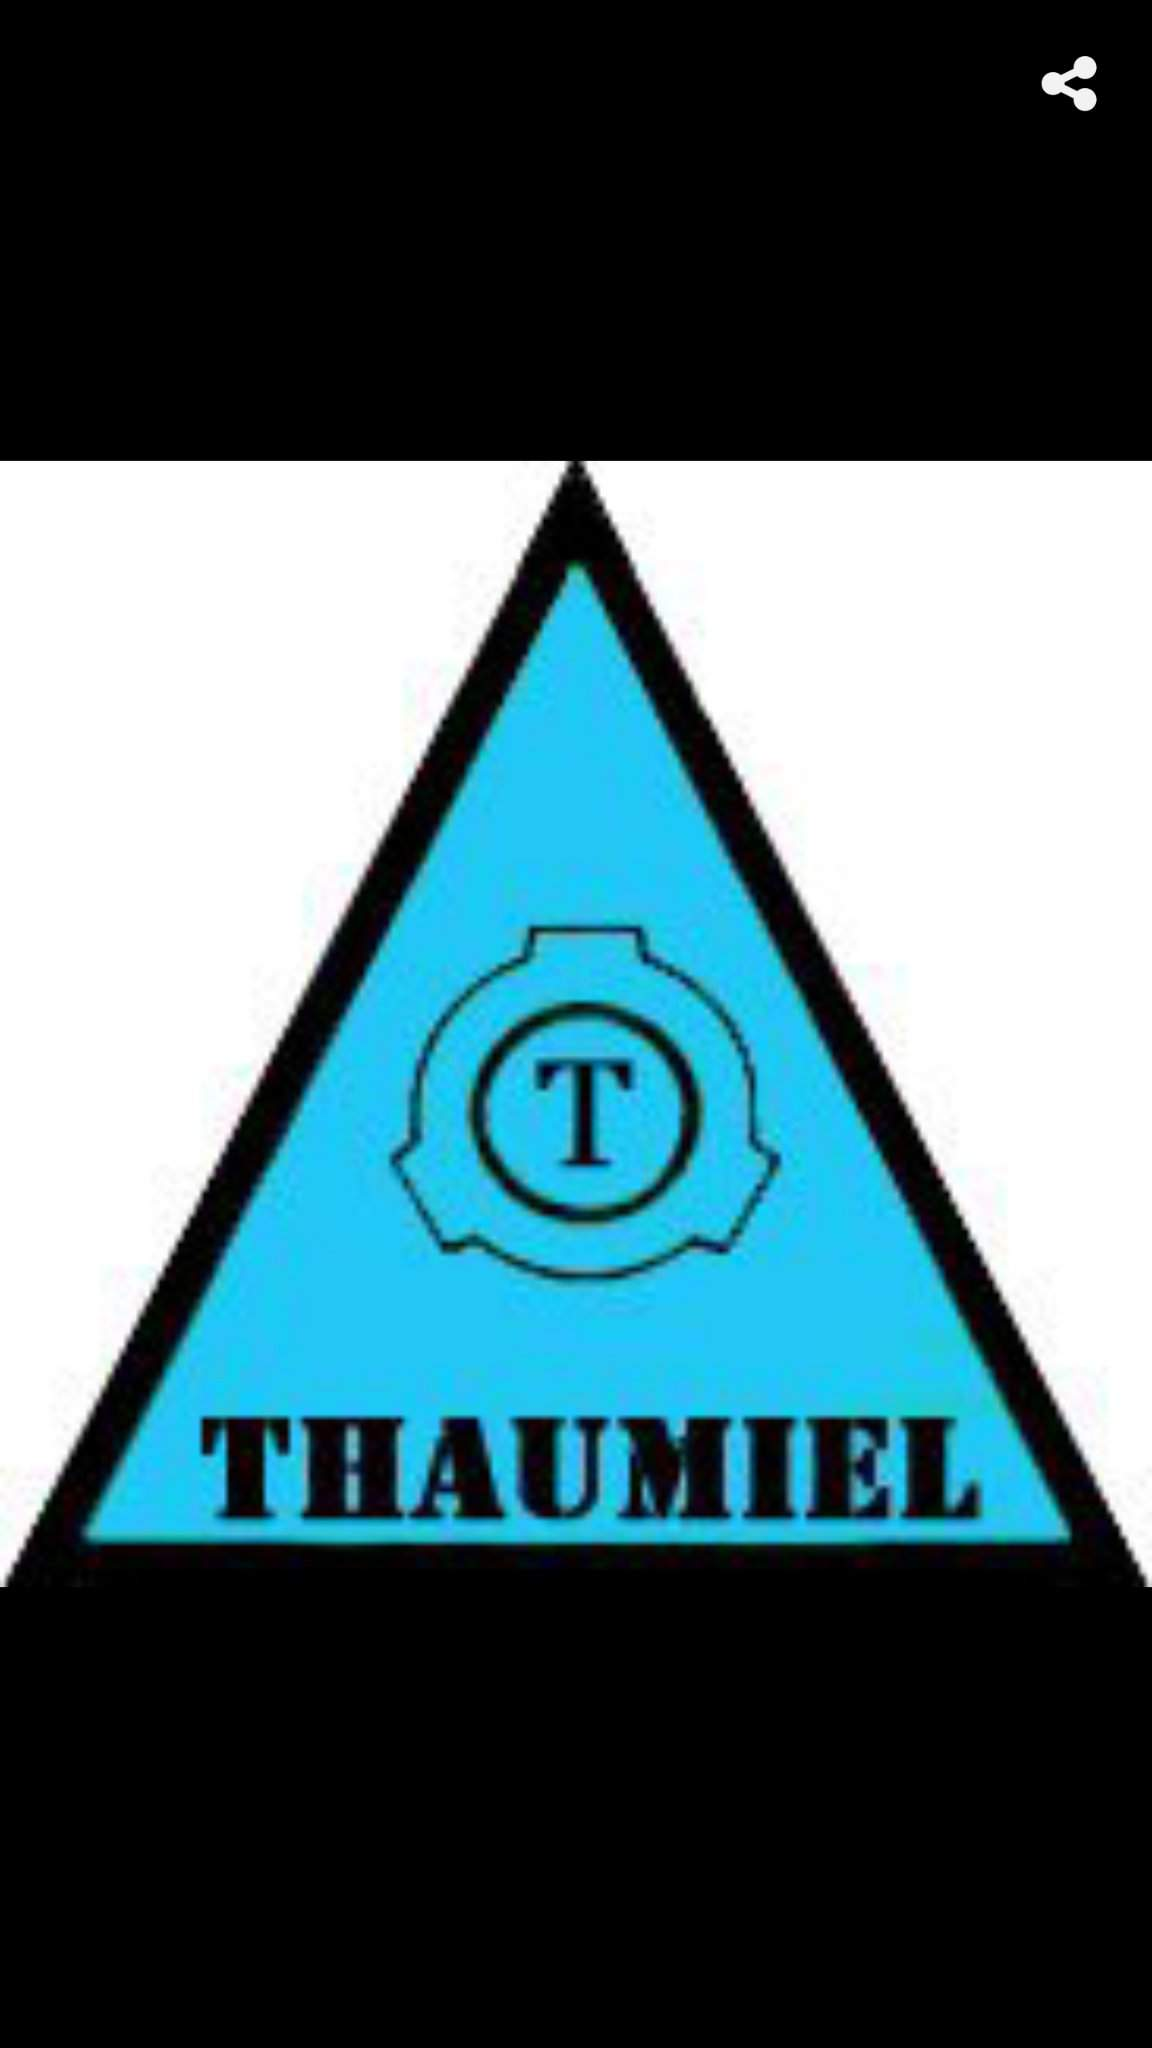 Thaumiel Wiki Scp Foundation Amino This scp foundation wiki reading is about scp 3319, connected with the scp foundation group of interest, the three moons initiatve, and is also a k class scenario scp! amino apps